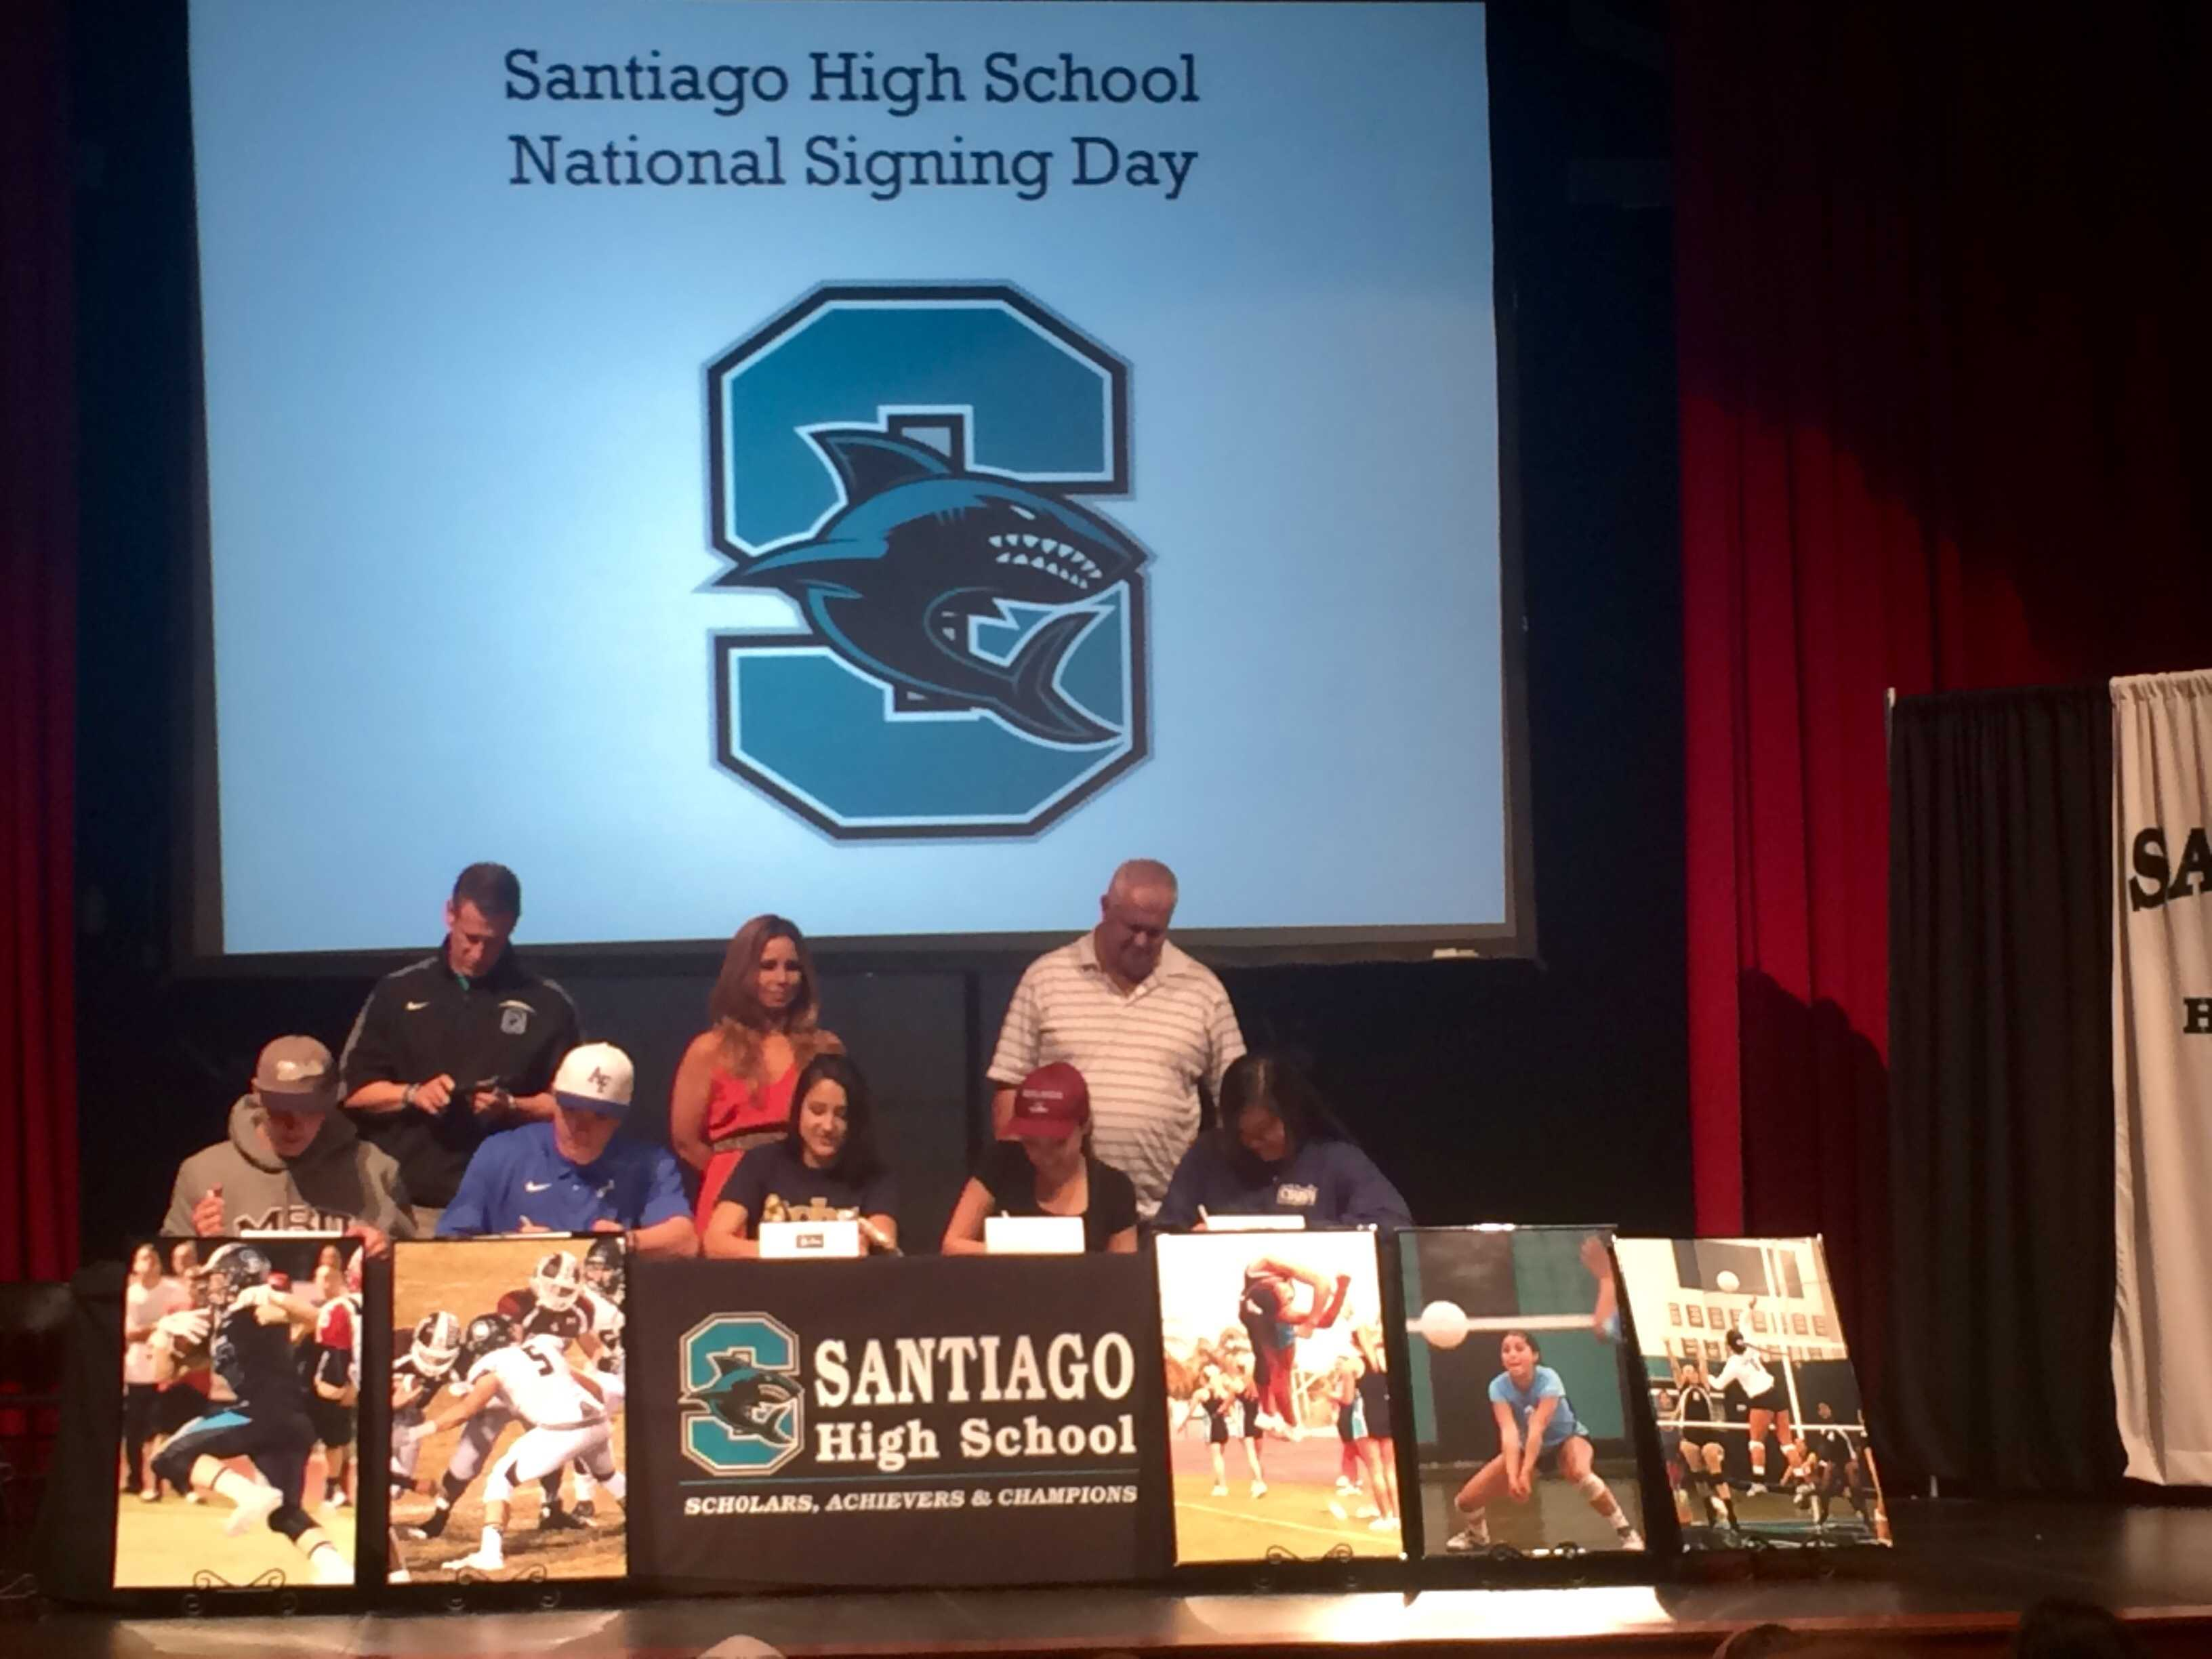 Santiago National Signing Day – Shark Attack